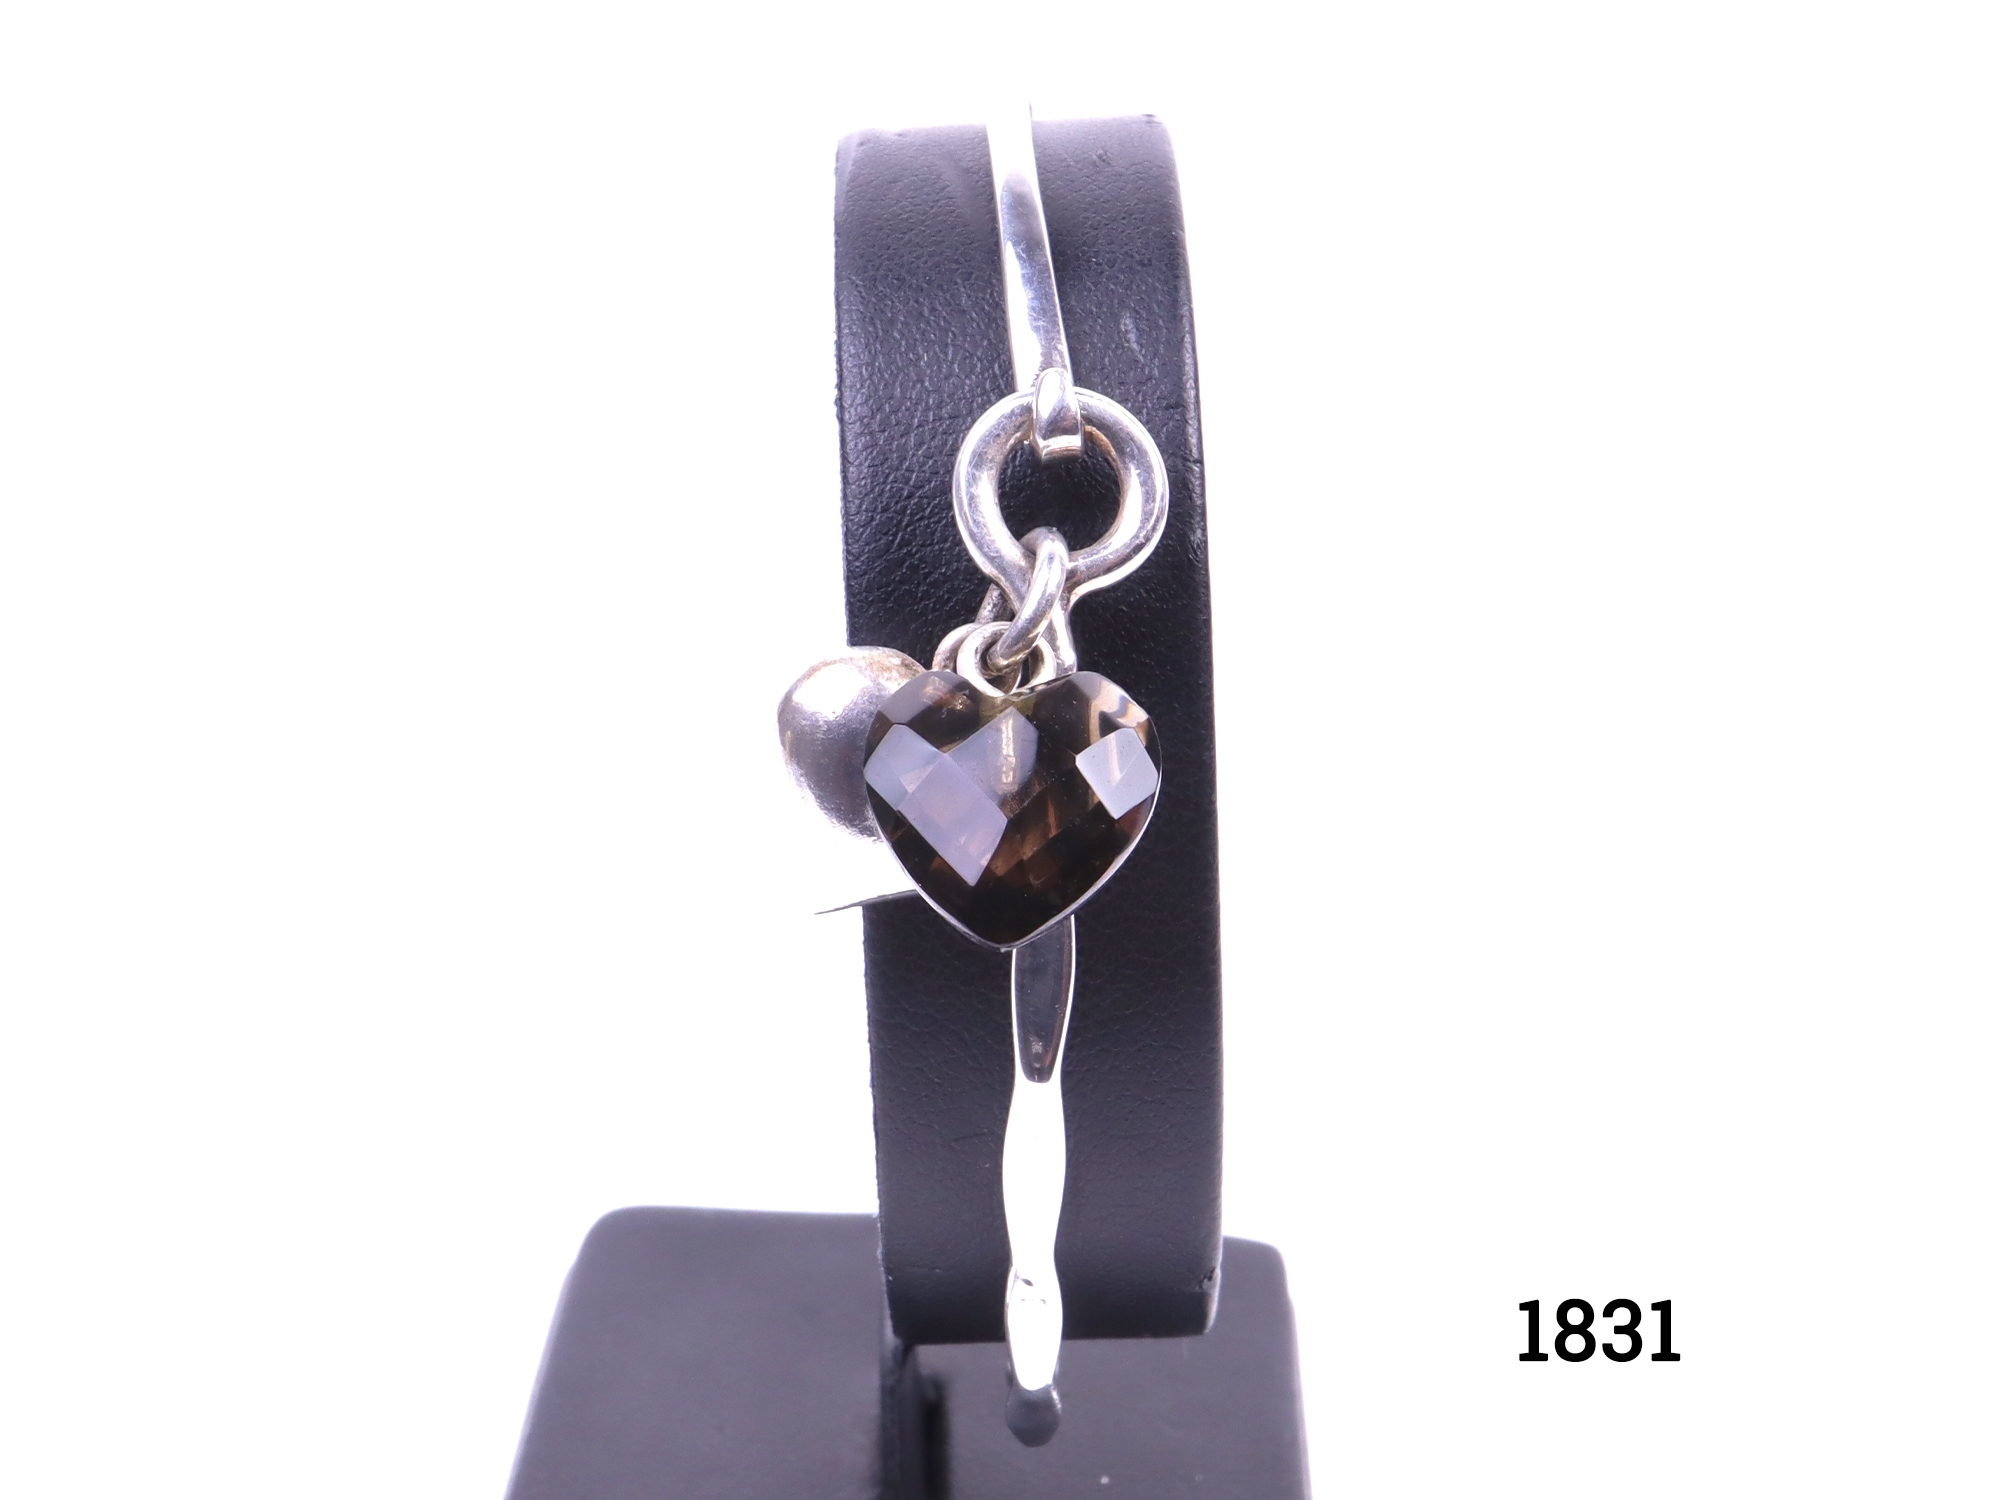 Azuni sterling silver bangle with 2 silver and glass heart shaped charms with clip fastening Full London assayed hallmarked c2006 Inner length 70mm width 55mm Main photo showing front of bangle with charms to the front